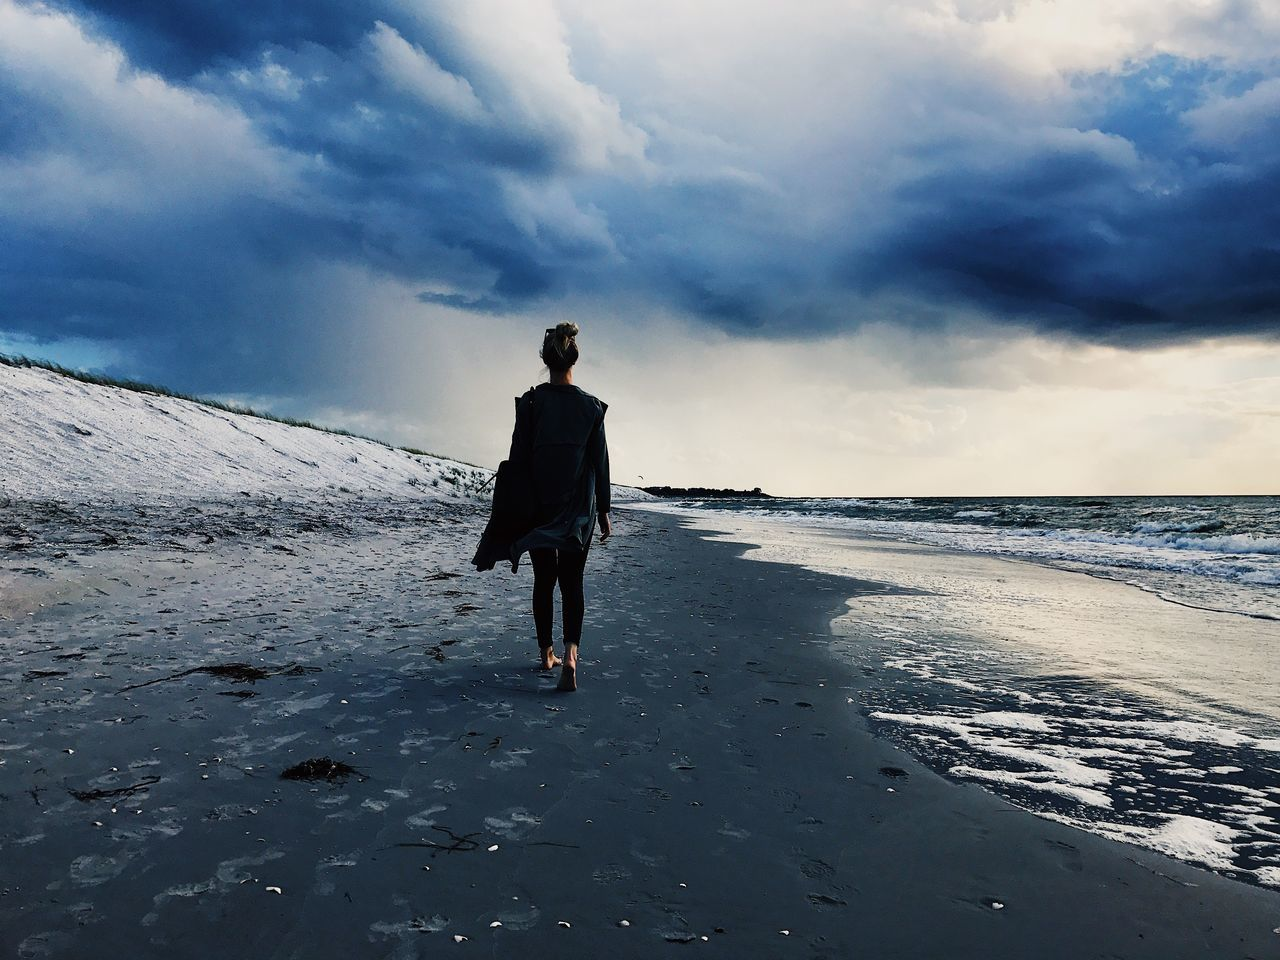 sky, cloud - sky, land, sea, water, one person, beauty in nature, rear view, beach, real people, lifestyles, full length, scenics - nature, leisure activity, nature, standing, walking, horizon, horizon over water, outdoors